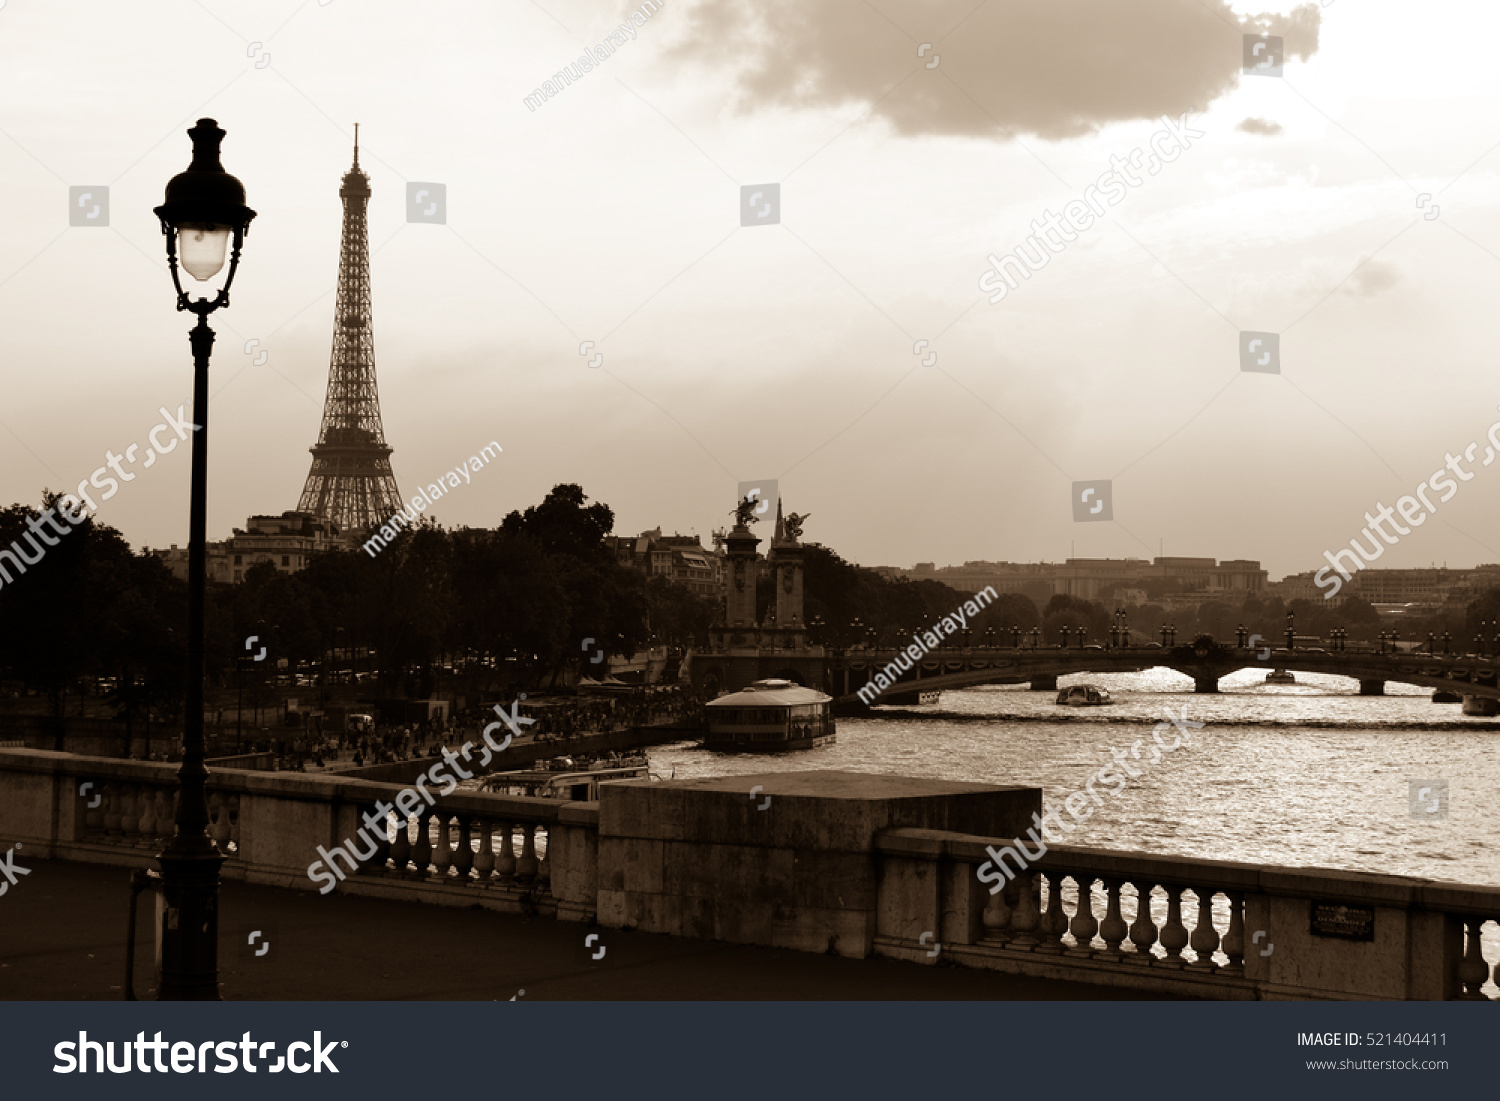 View of Paris and Eiffel Tower from a bridge over the Seine with a sepia filter